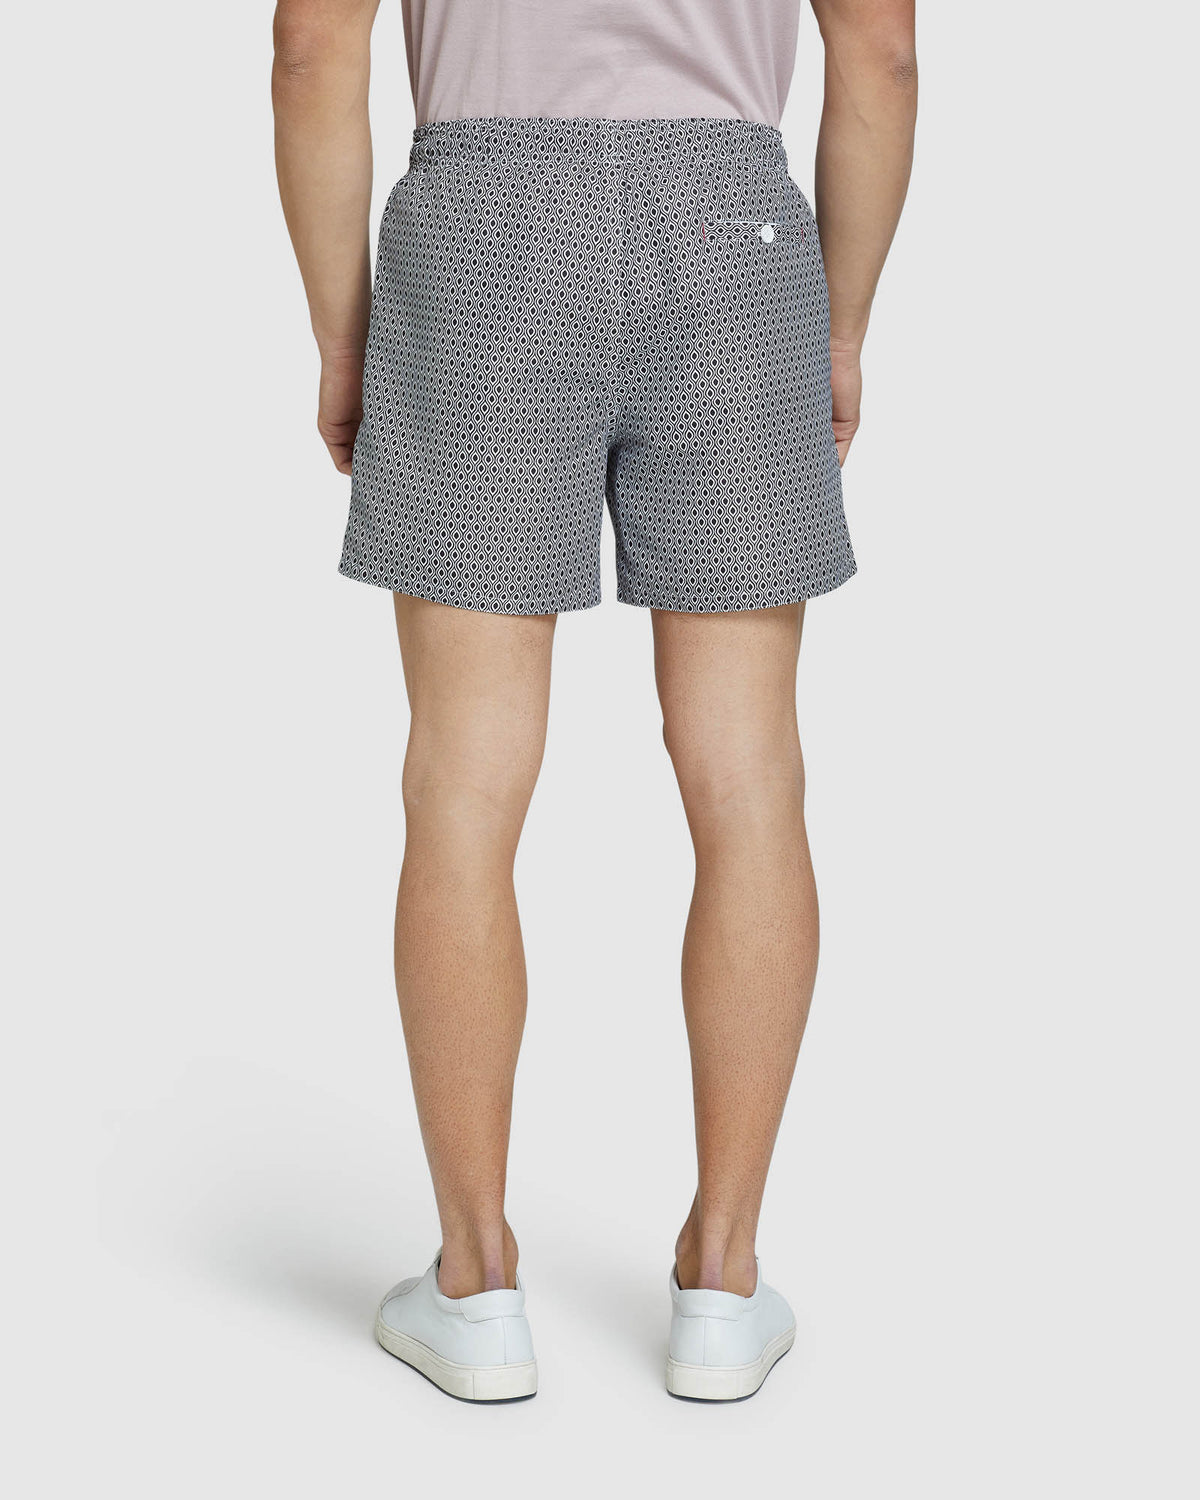 REECE SWIM BOARD SHORTS NAVY